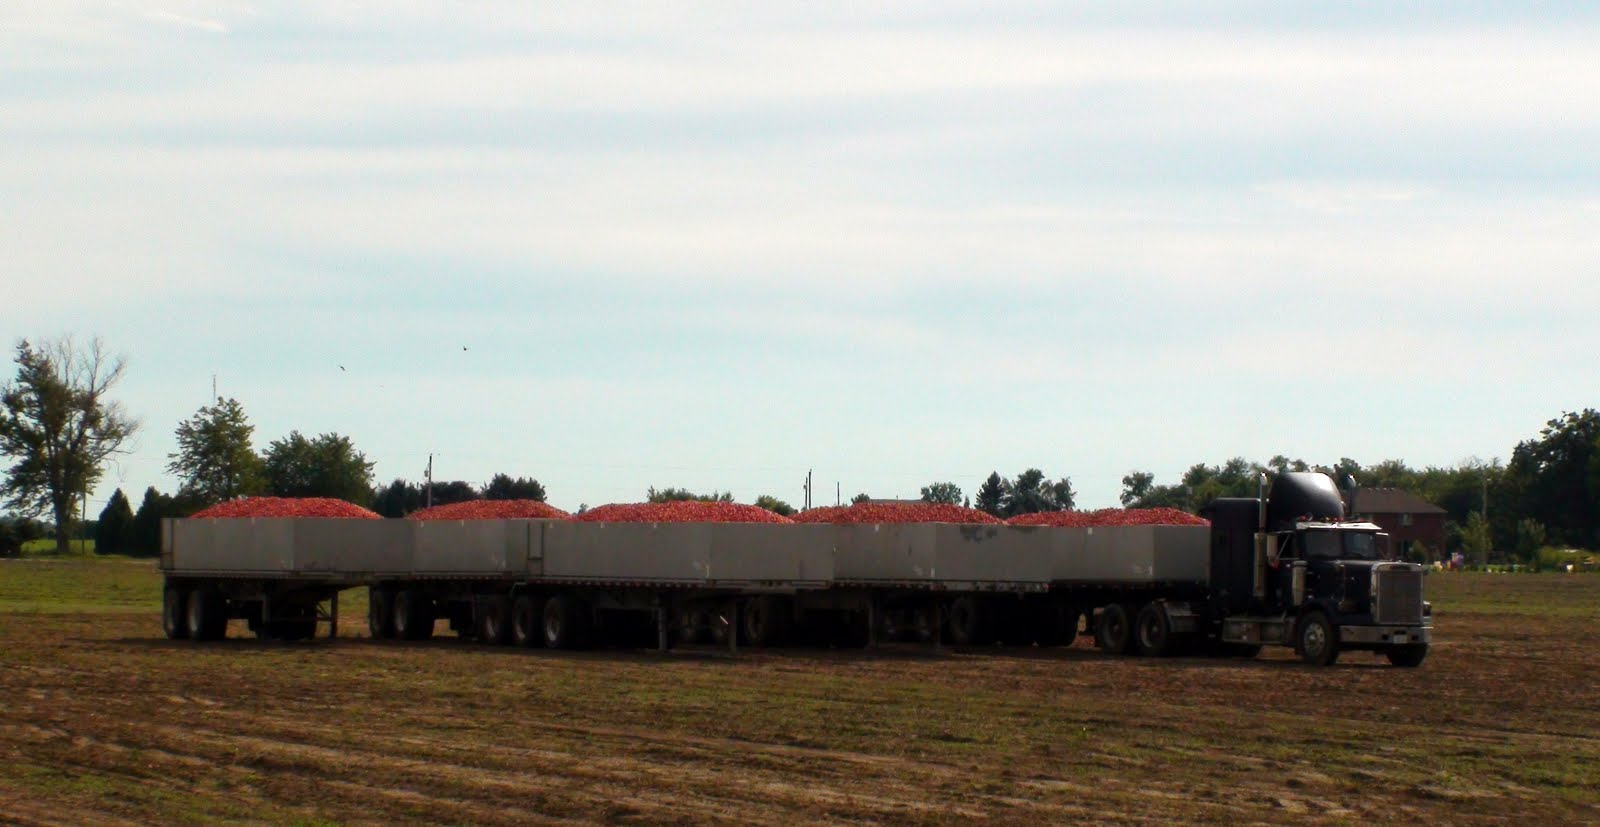 A truck hauling tomatoes to the plant.